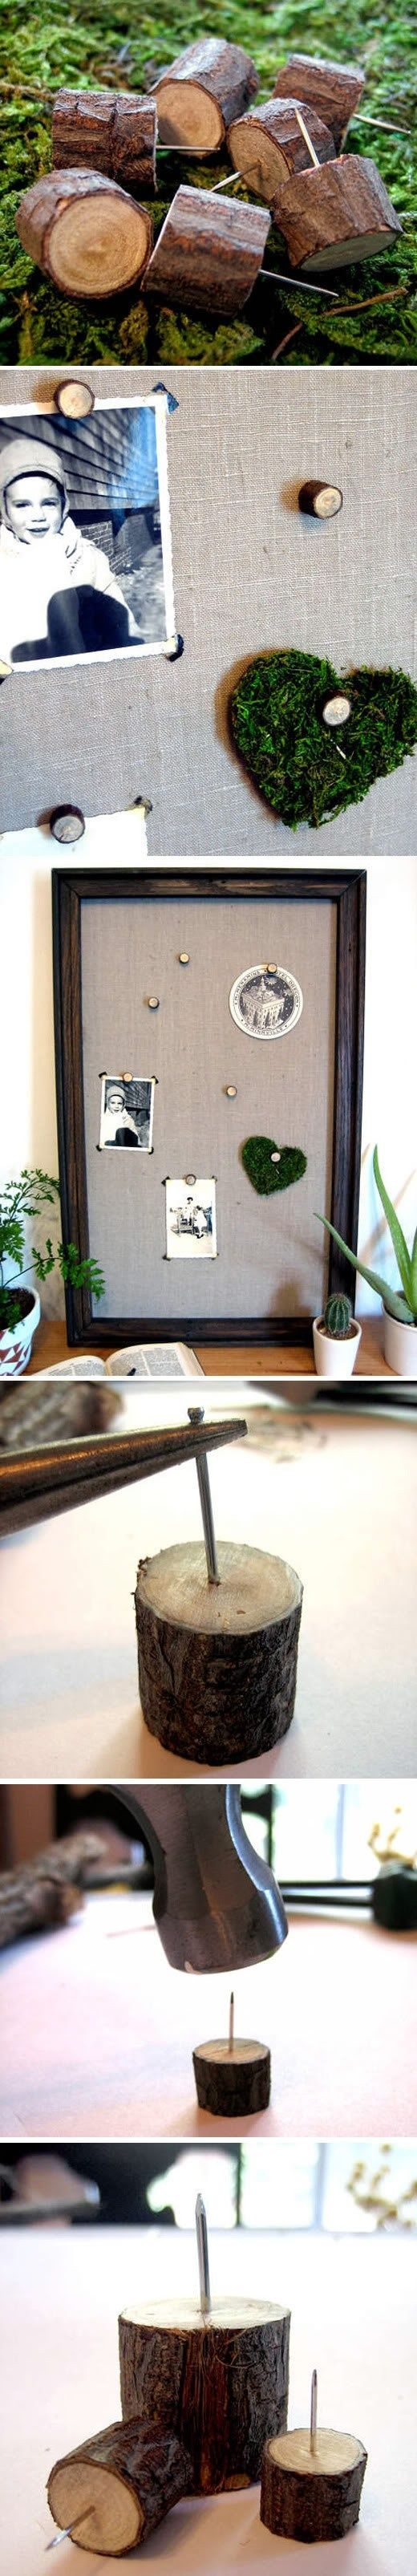 DIY tacks, made from twigs. Love this! Could use to hang jewelry for display, cool to change up into magnets too!